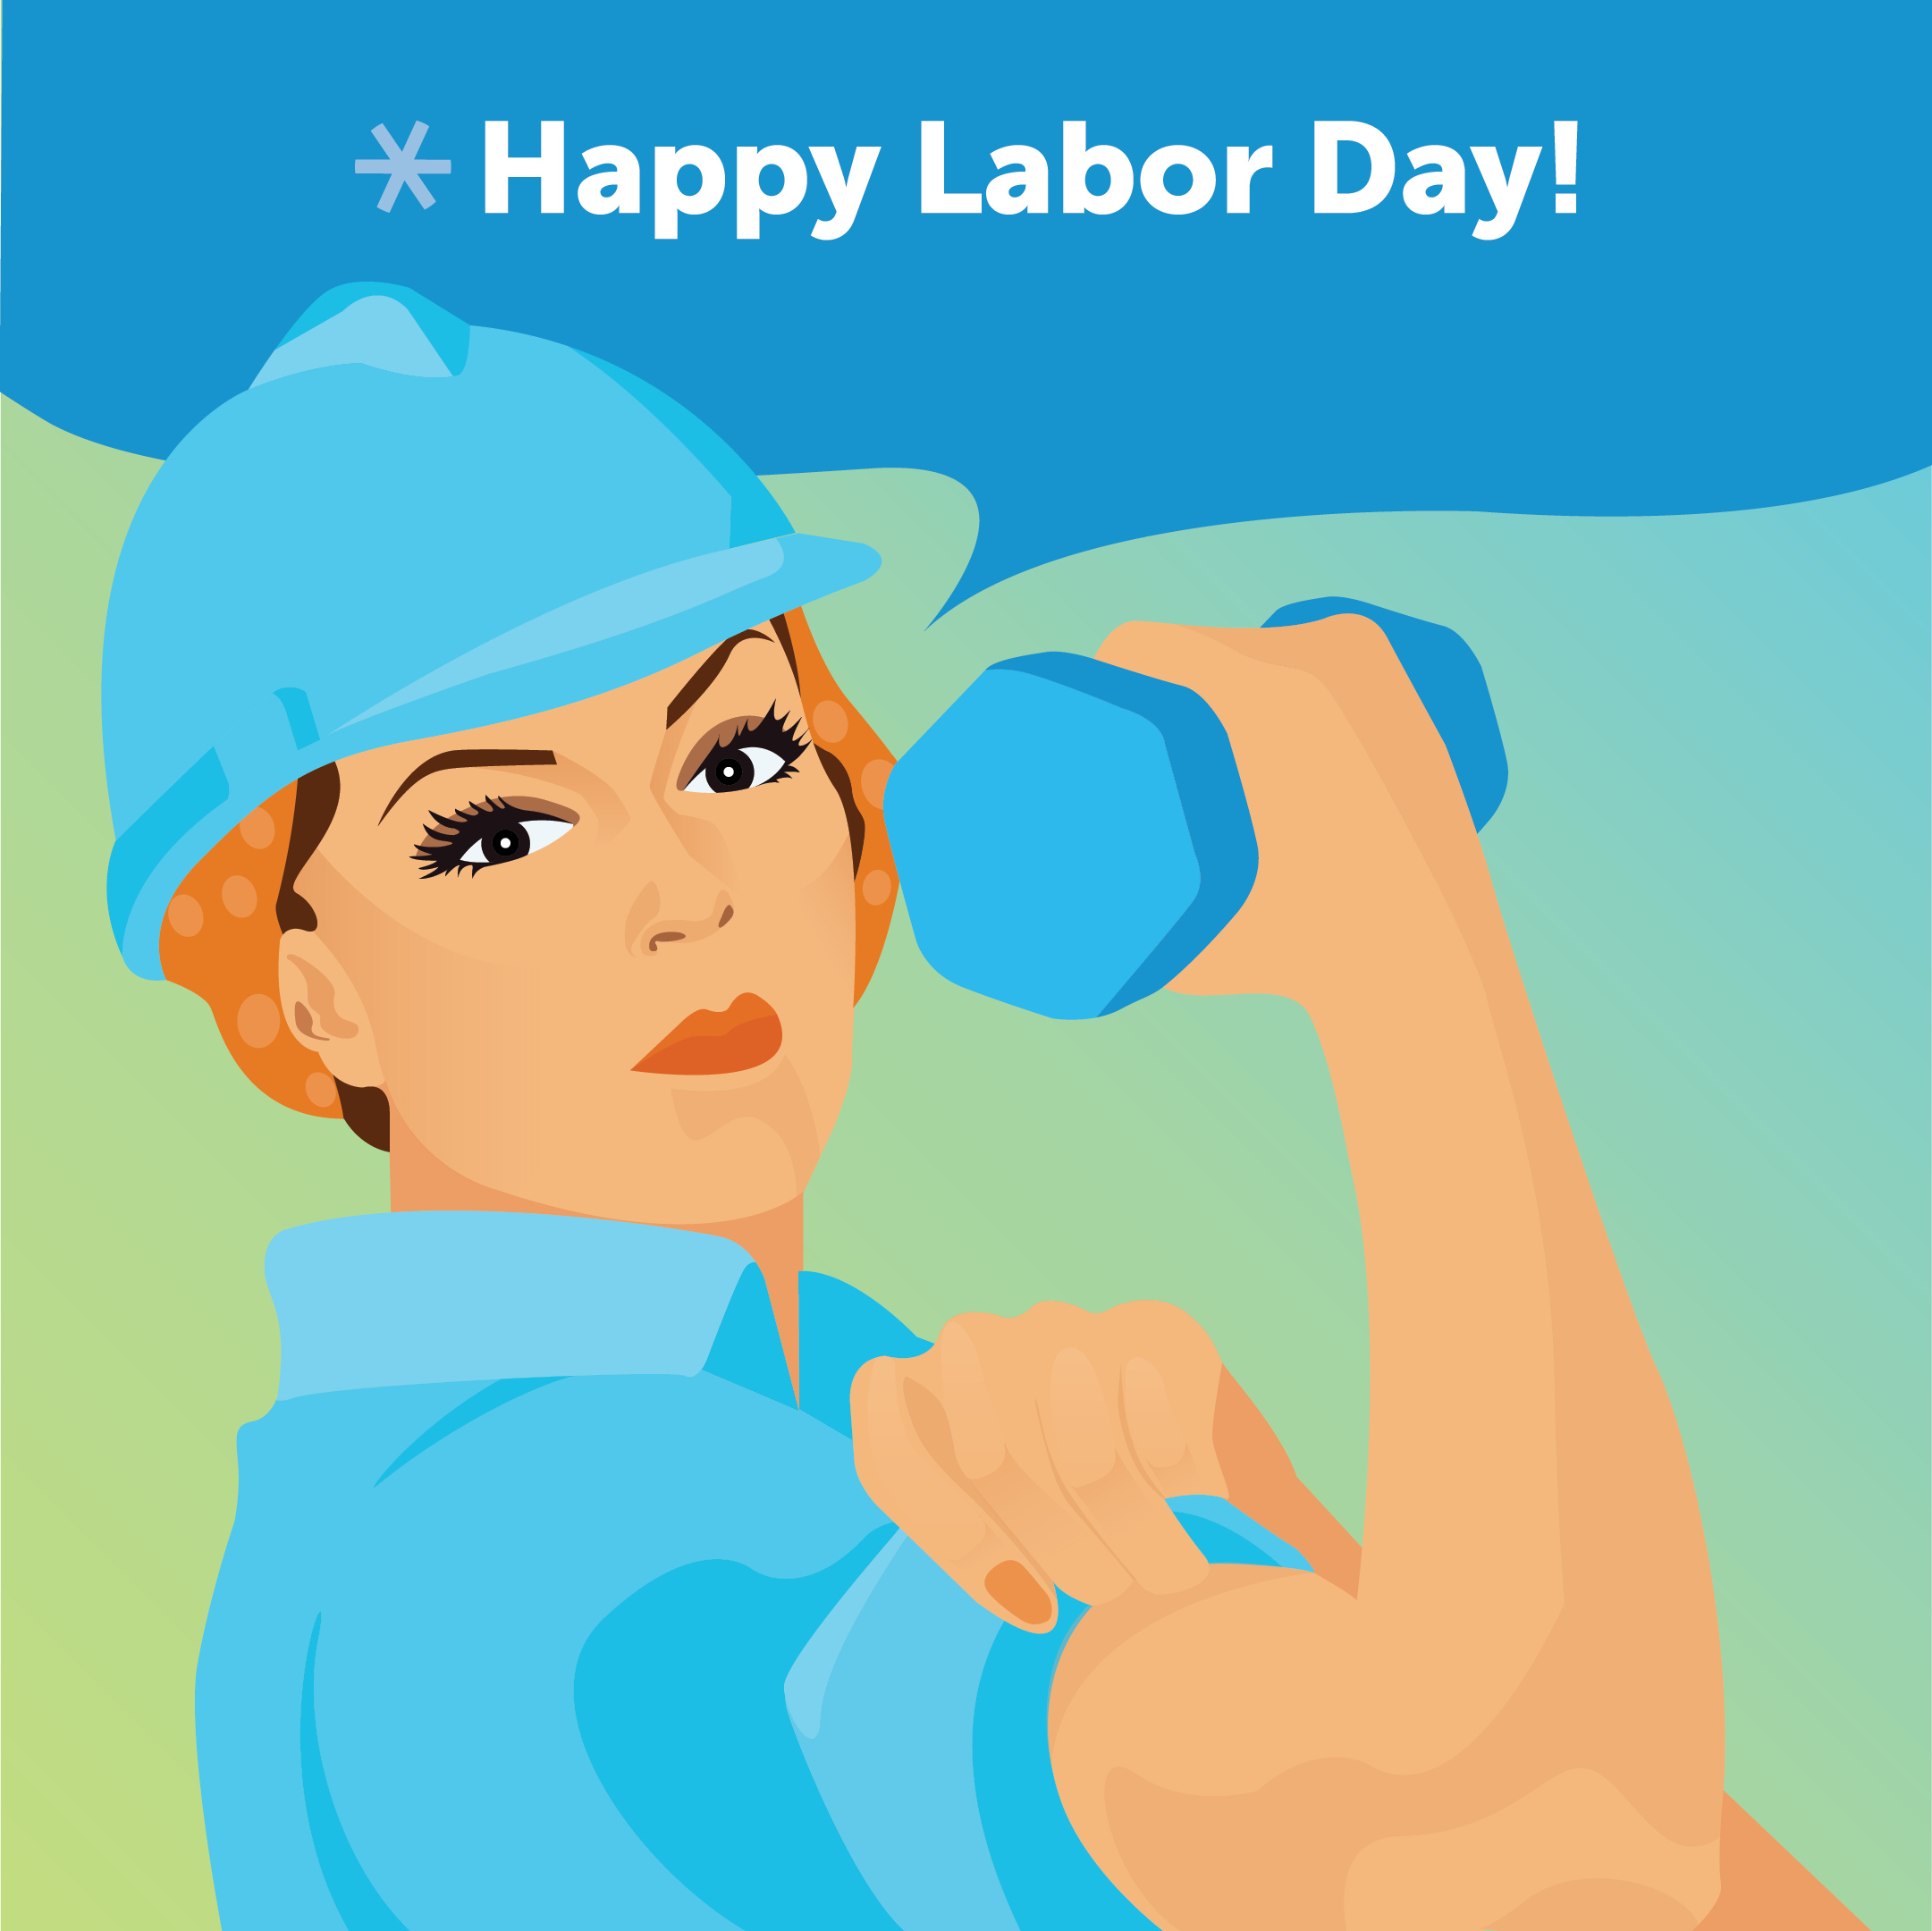 pf_labor-day_3.png